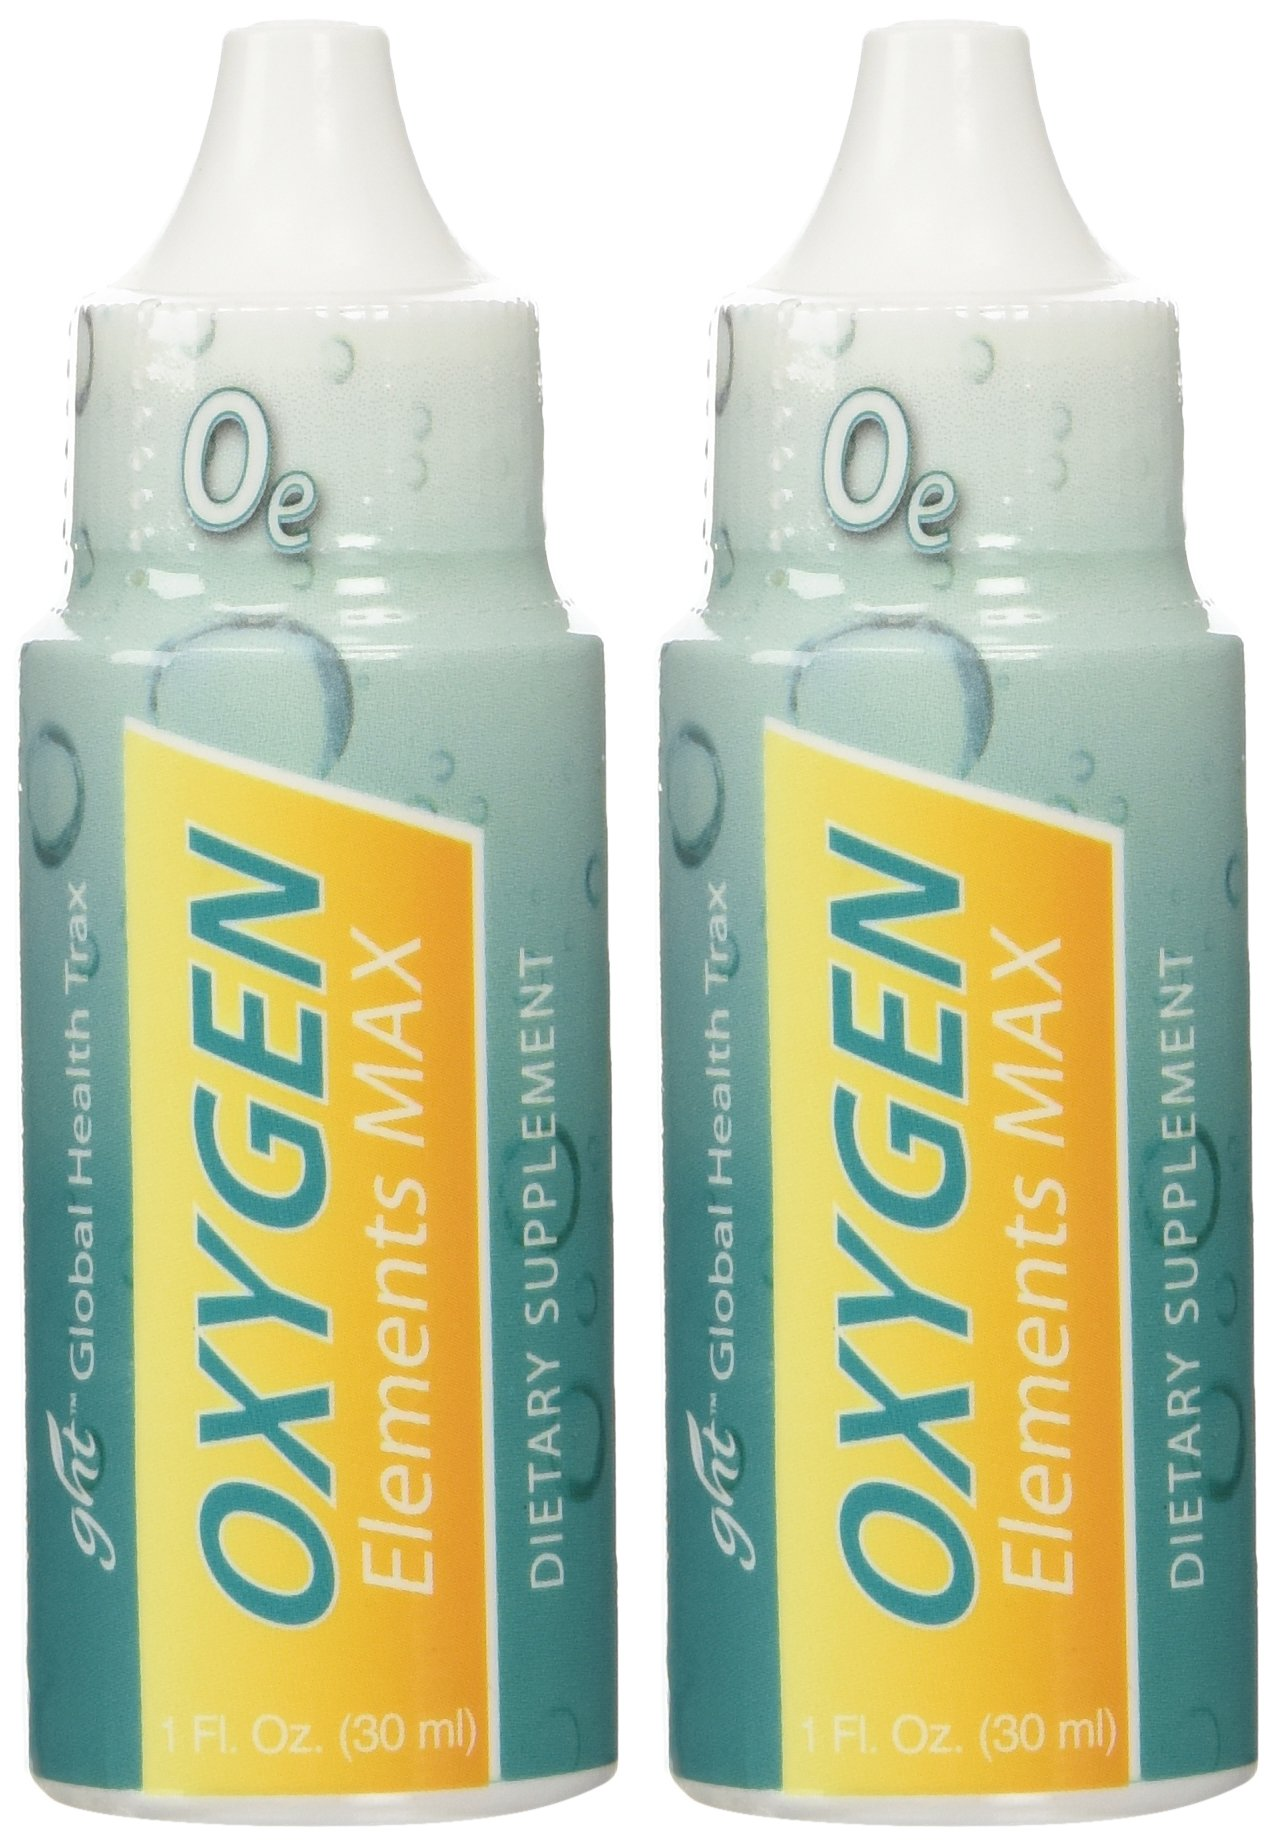 Oxygen Elements Max Plus Candida Therapy Yeast Fighter By GHT 1 Oz Per Bottle - 2 Bottles by Oxygen Elements Max